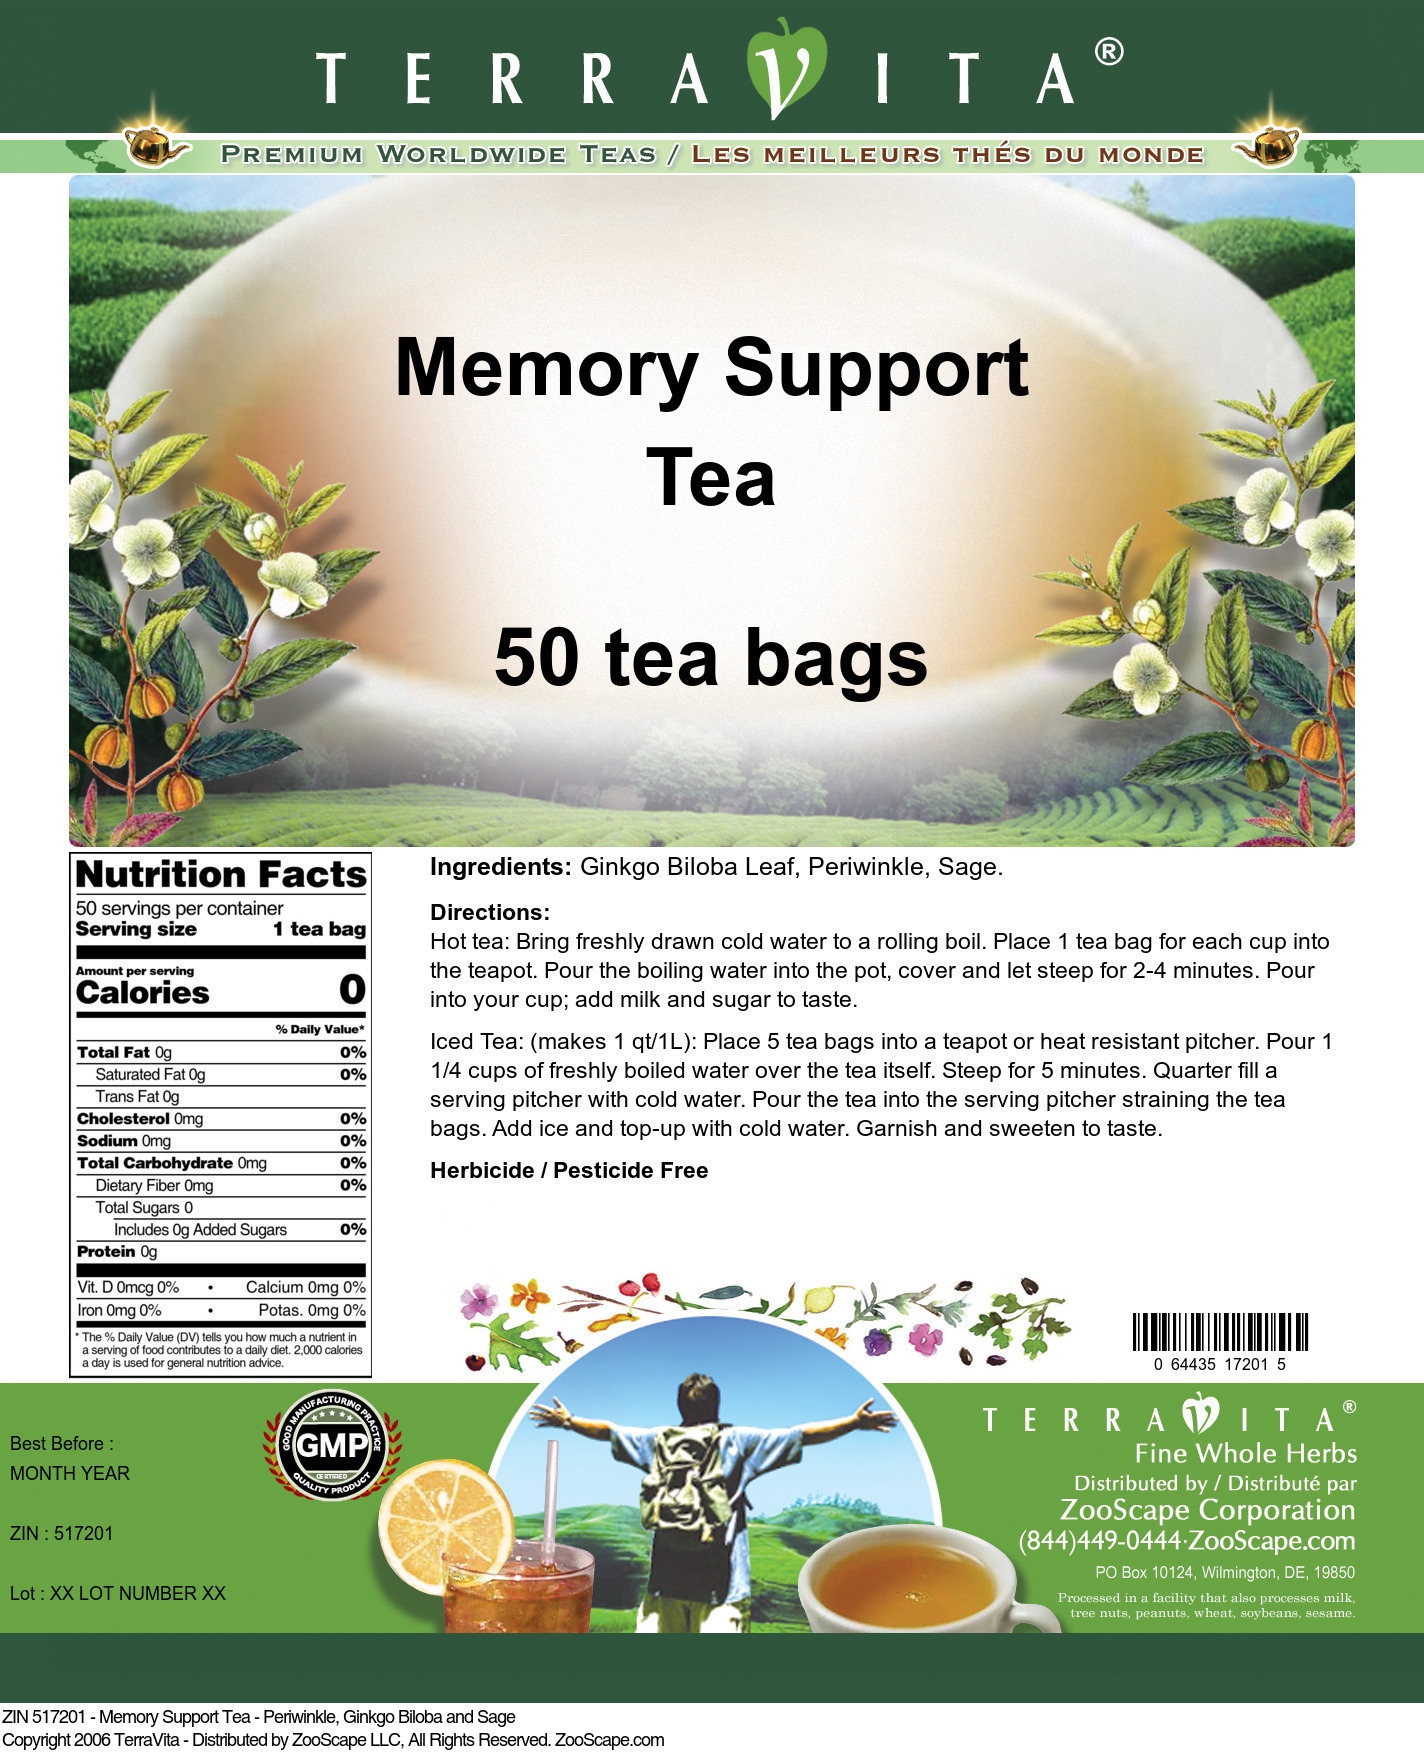 Memory Support Tea - Periwinkle, Ginkgo Biloba and Sage